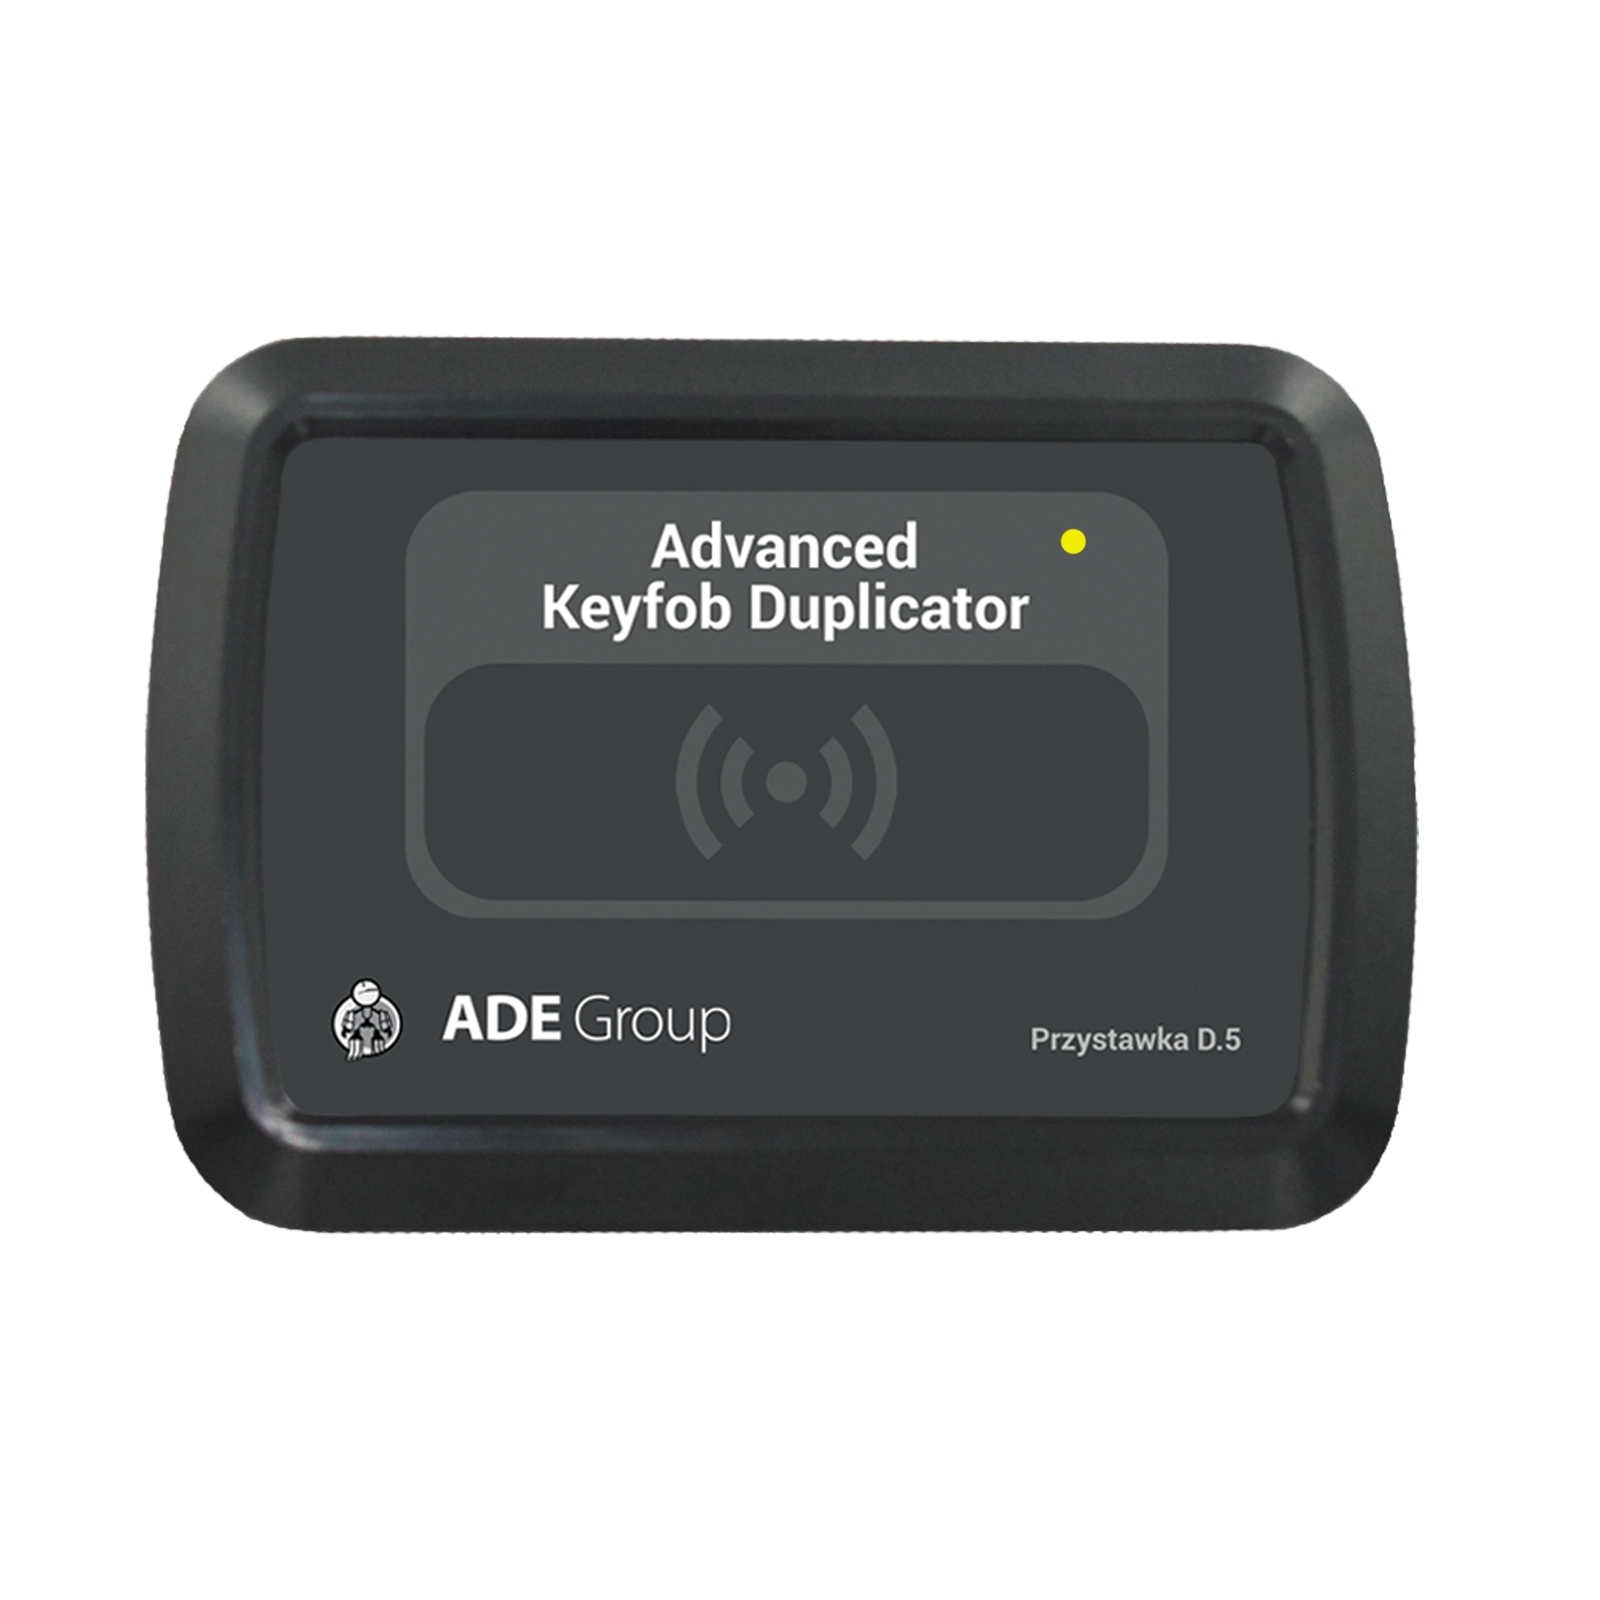 2017-09-17_21-31-19_0_advancedkeyfob0dupolicator